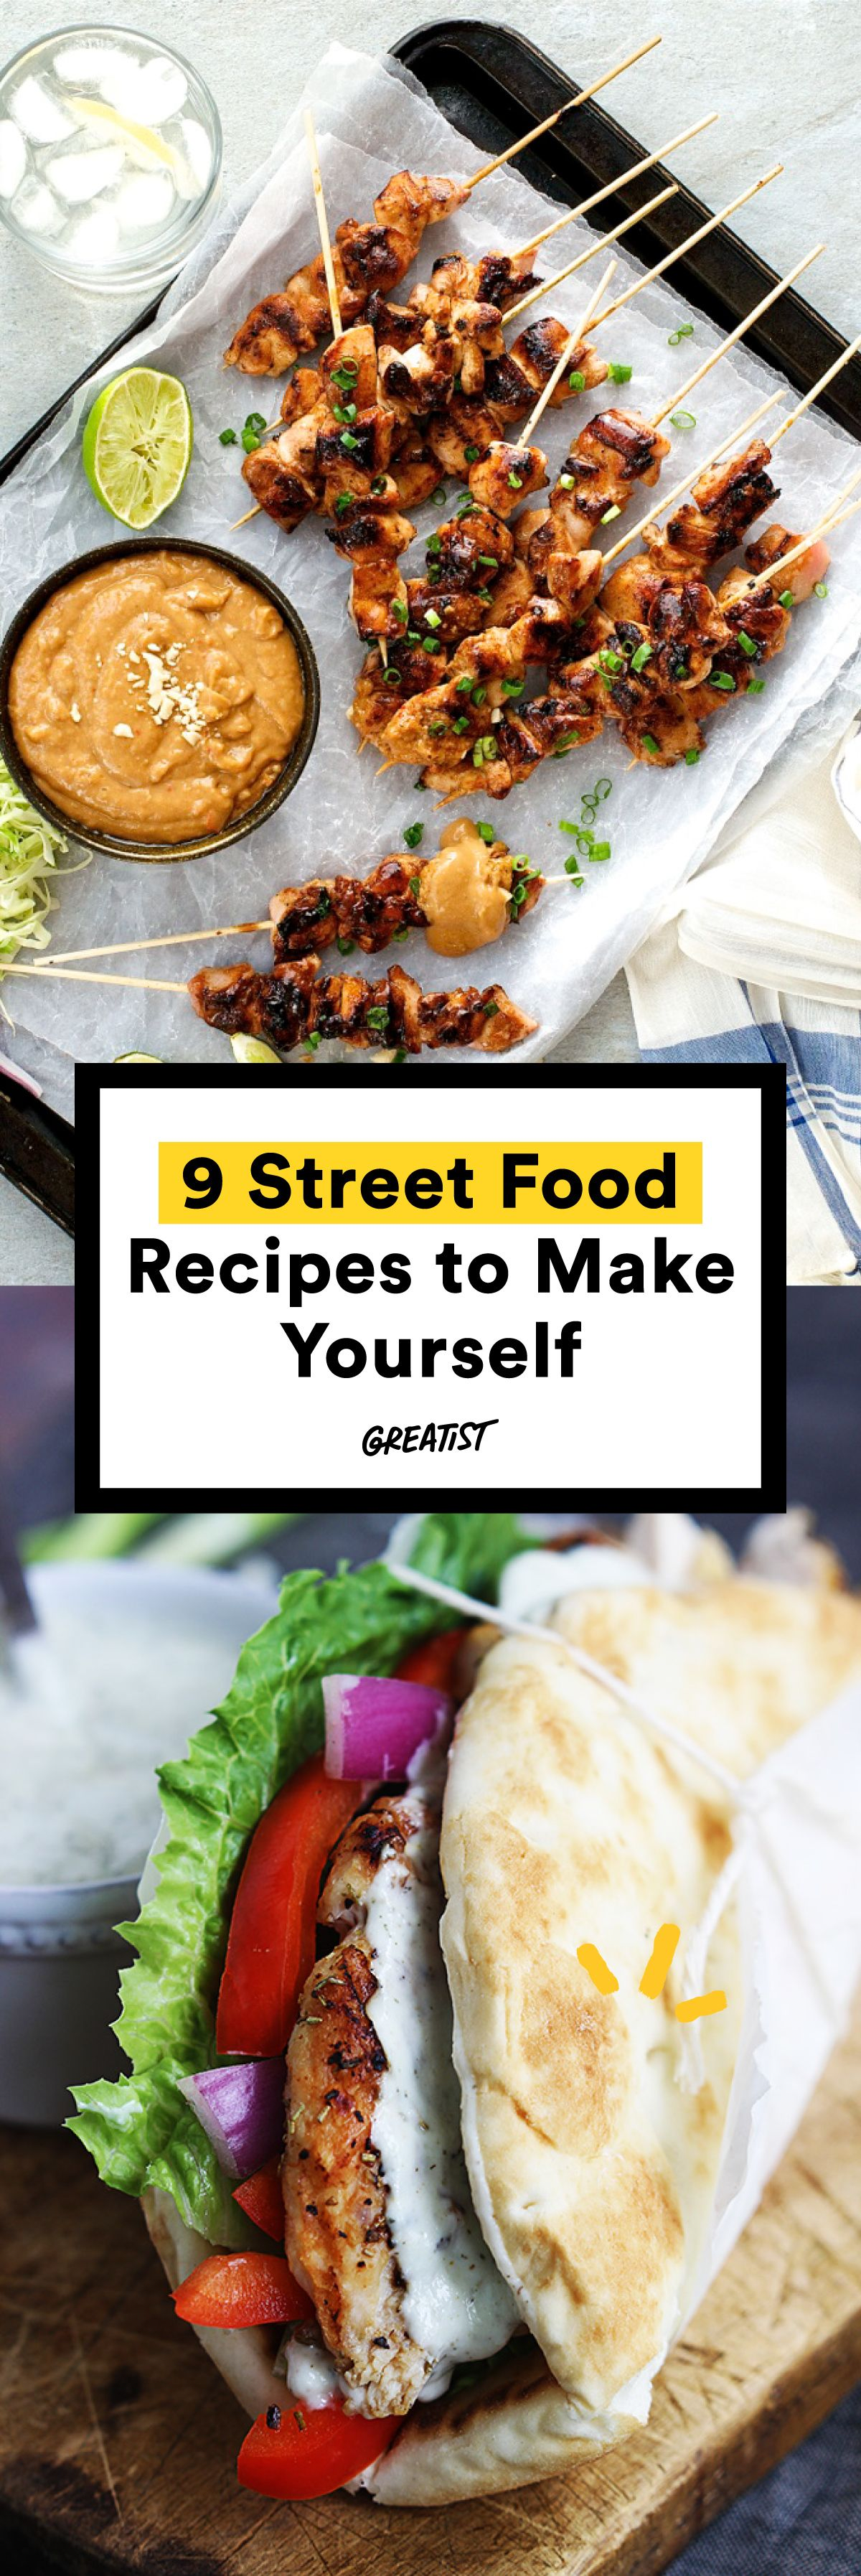 9 Street Food Recipes for When There's No Truck in Sight